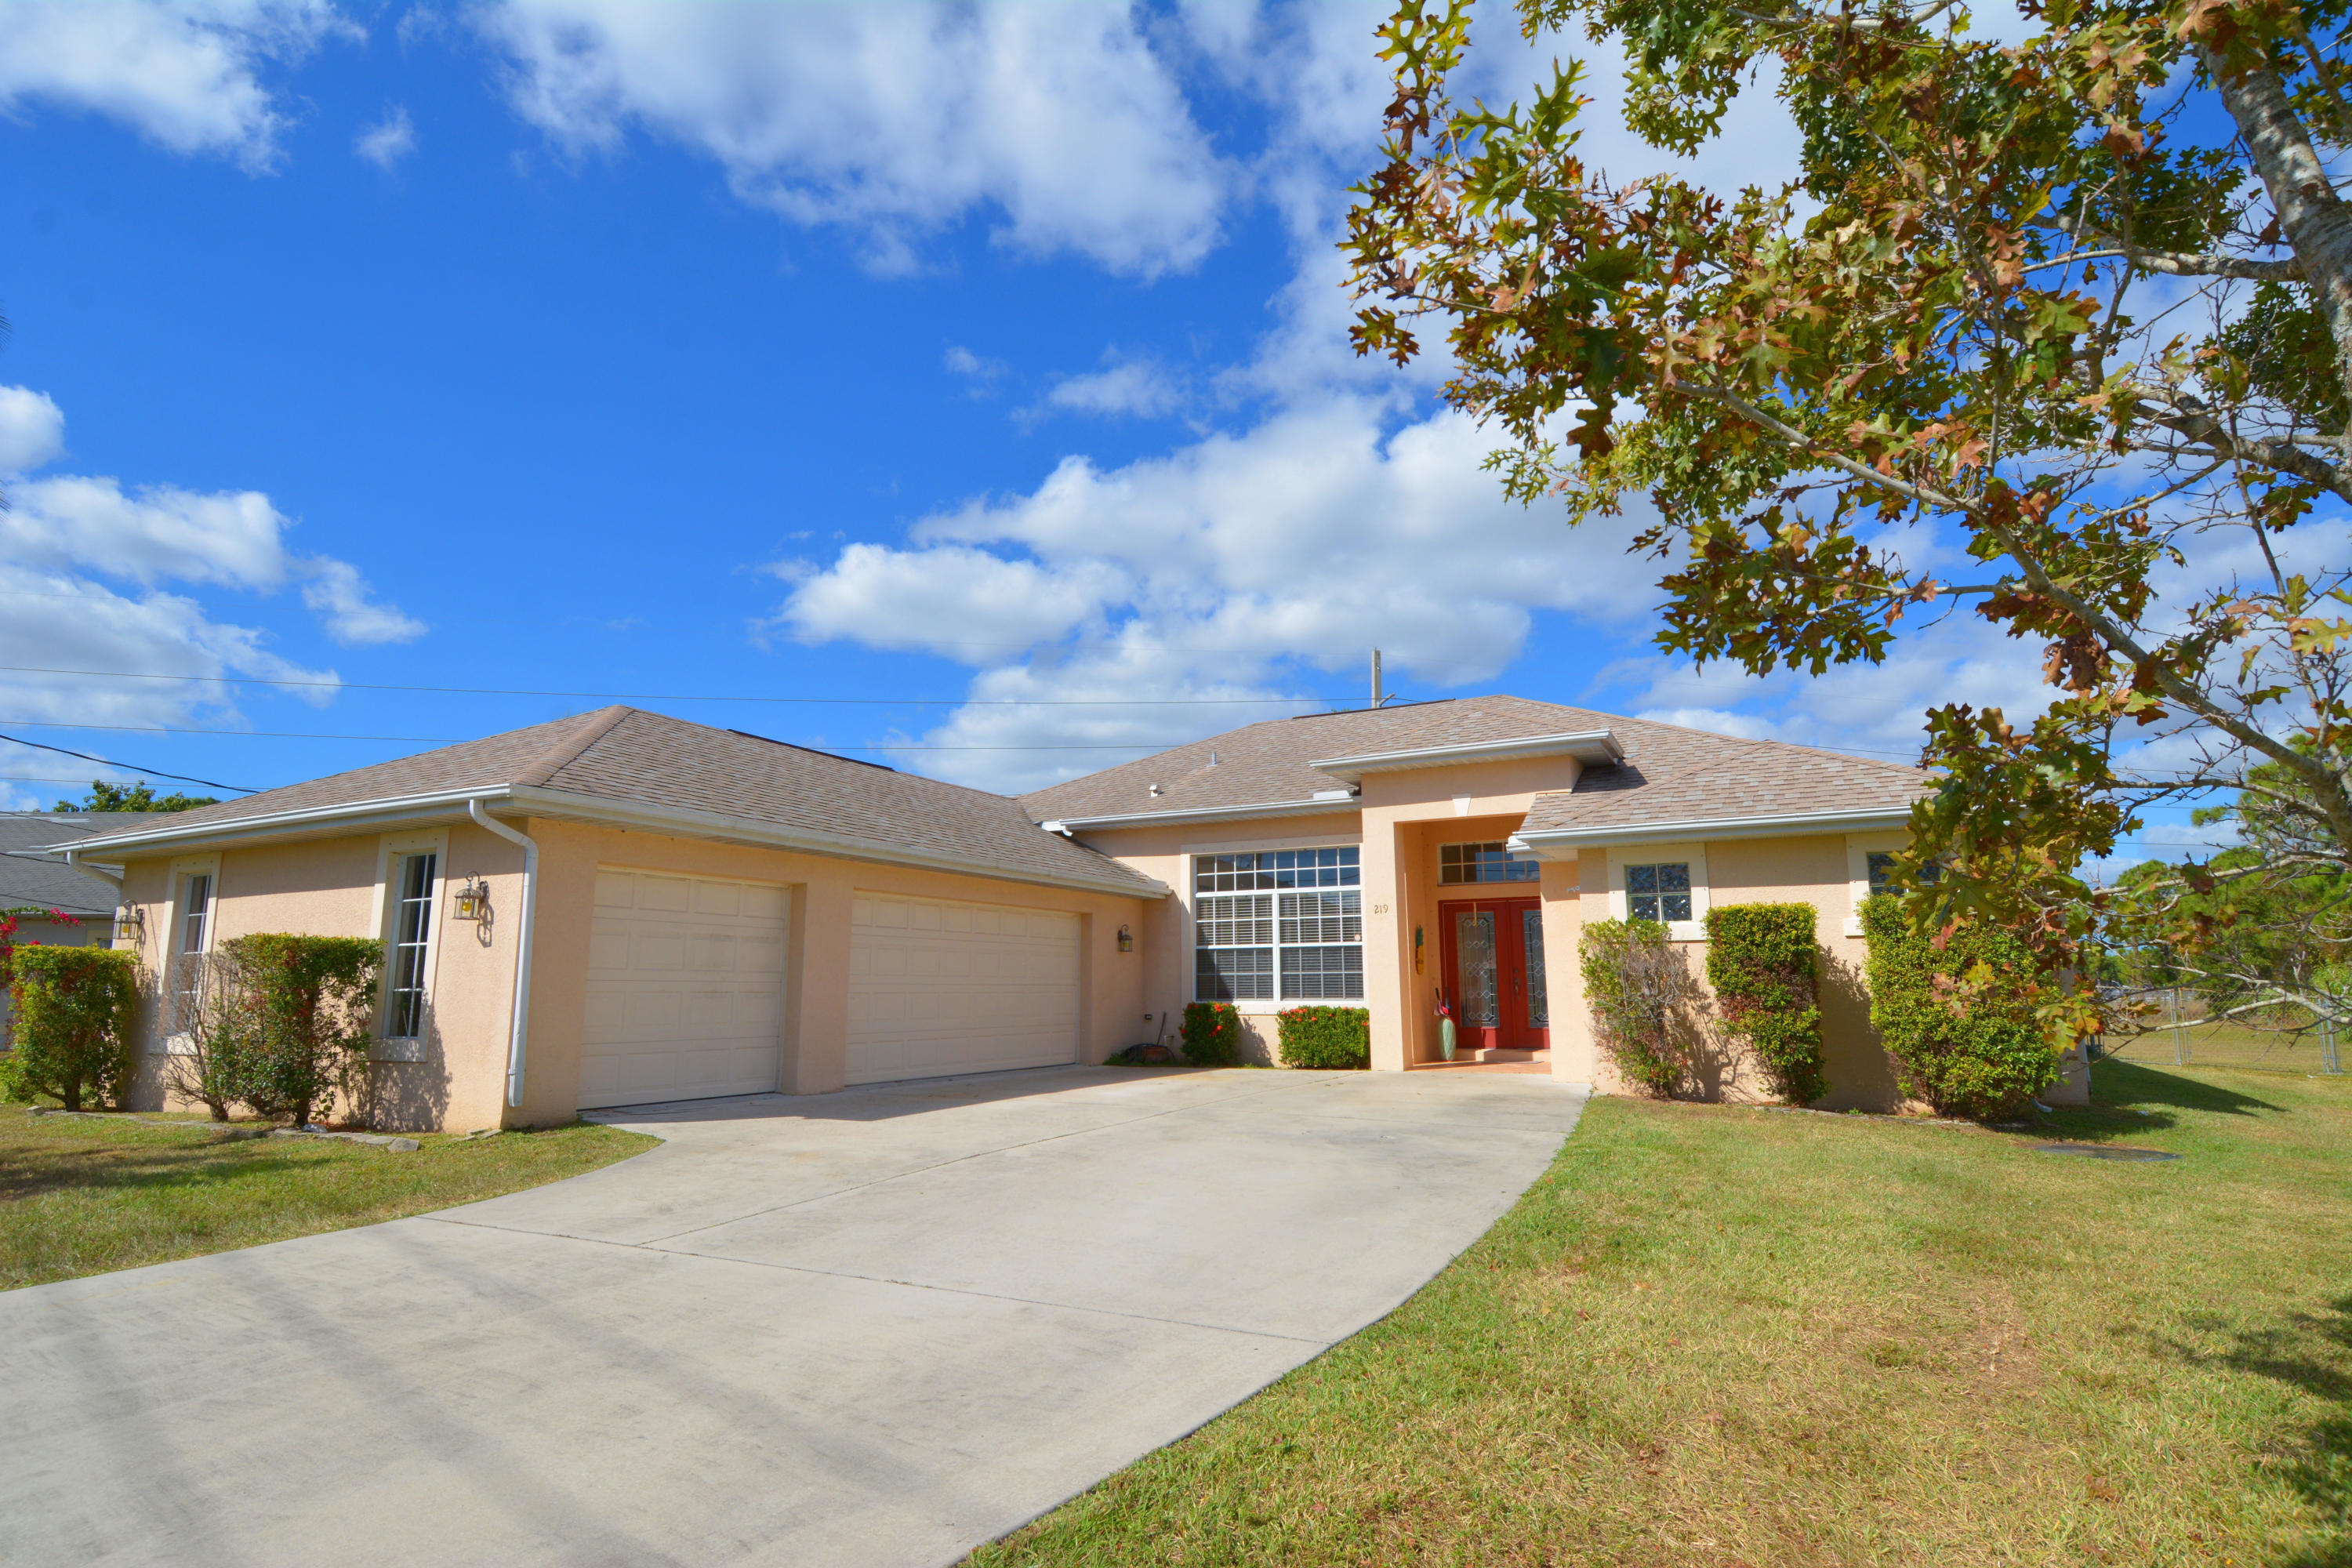 219 SE Sims Circle, Port Saint Lucie, Florida